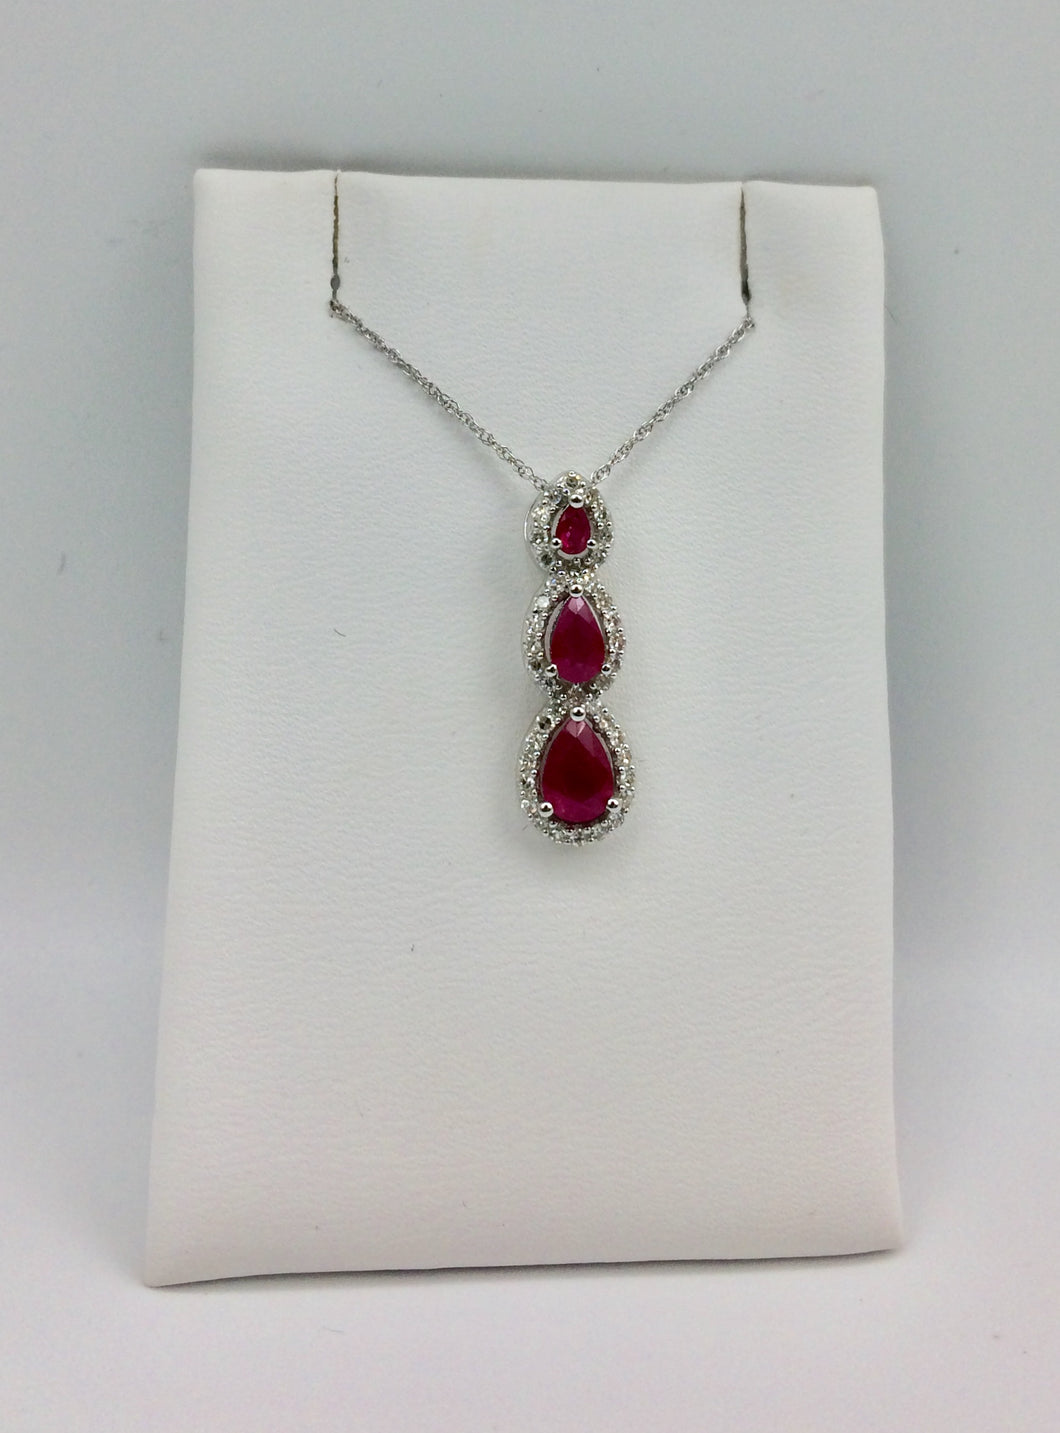 10K White Gold Ruby Necklace